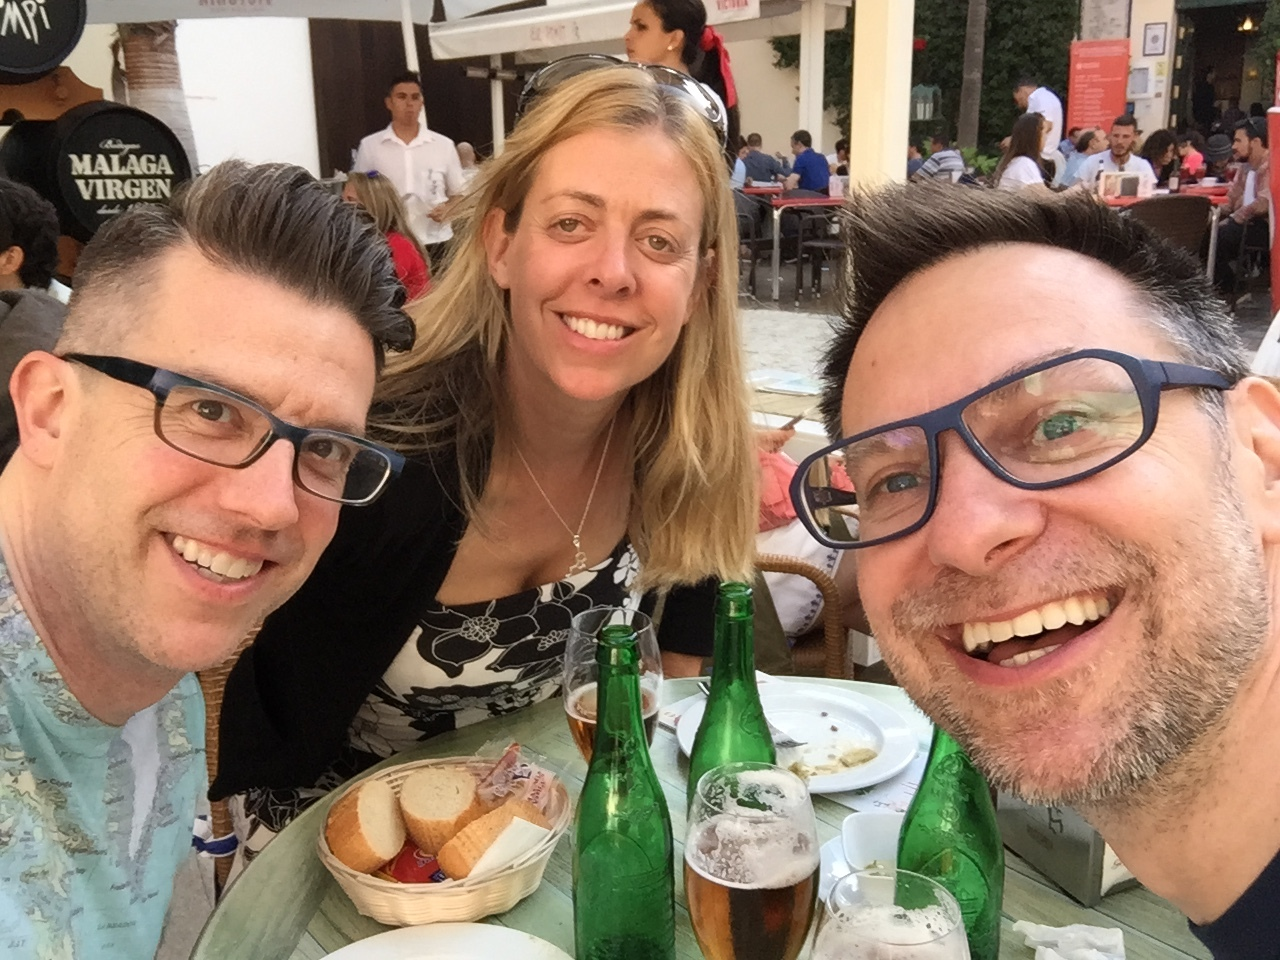 Kicking off their visit to España: Jo takes Wally and Duke to the local staple, El Pimpi